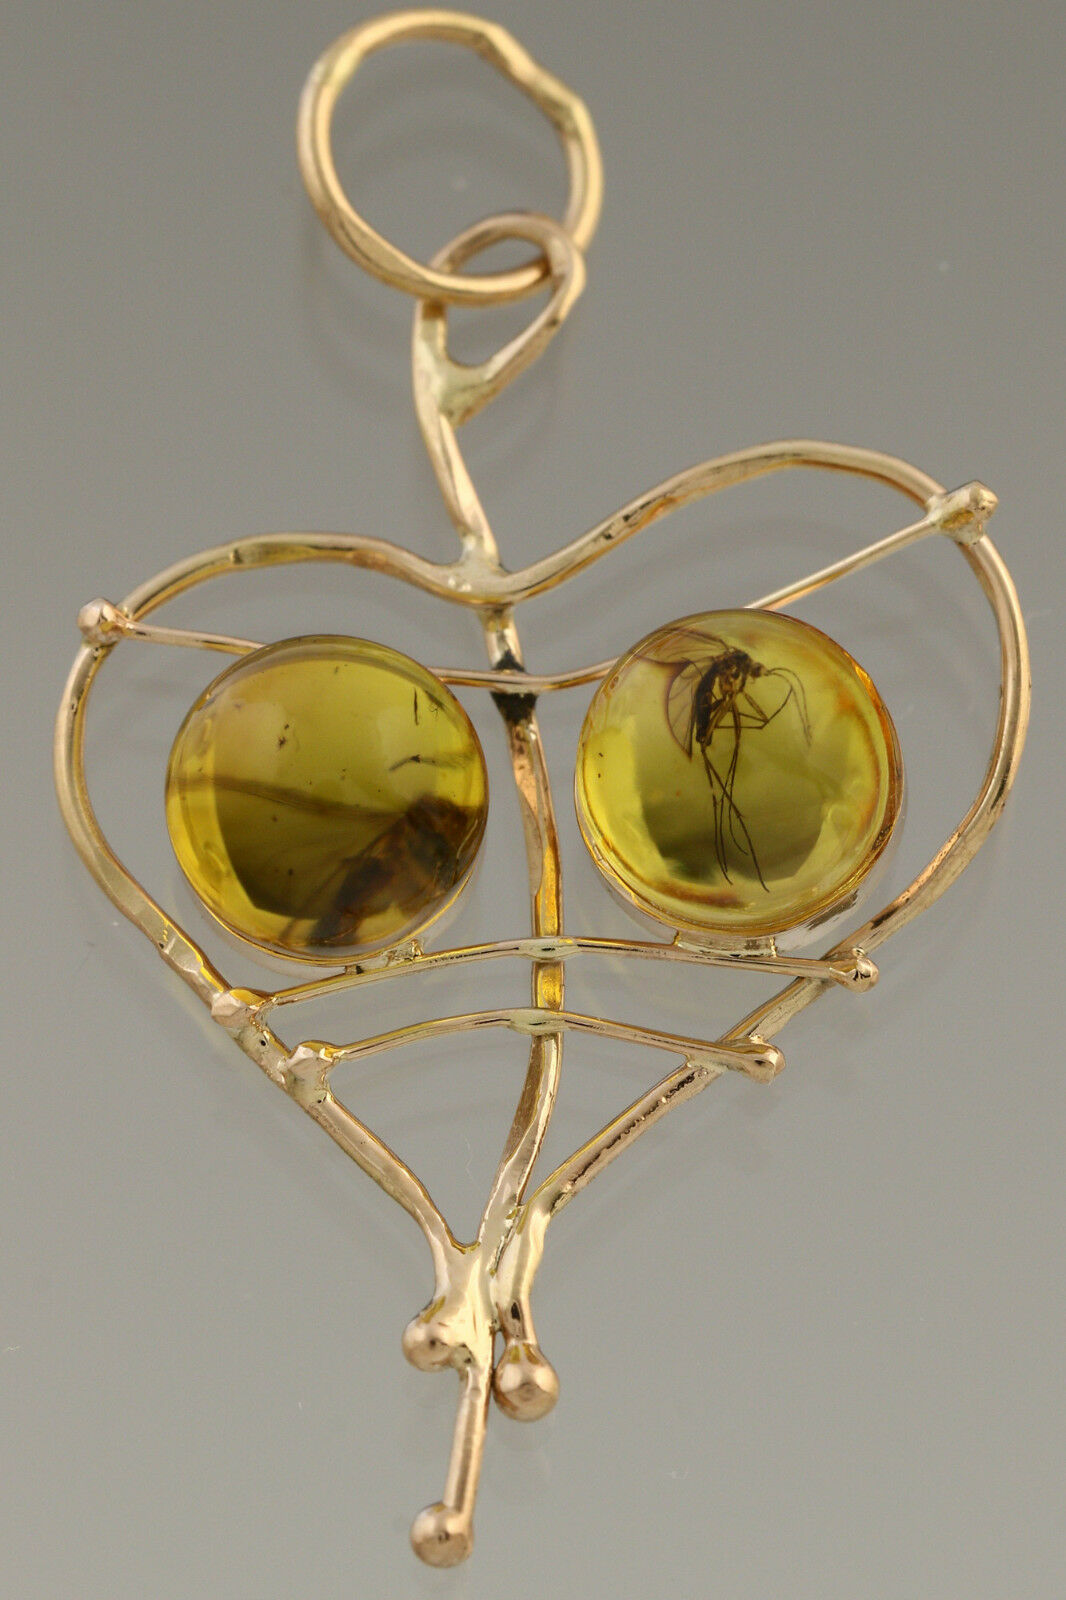 Genuine BALTIC AMBER 14K gold Heart Pendant with Fossil INSECTS 1.1g 181129-4